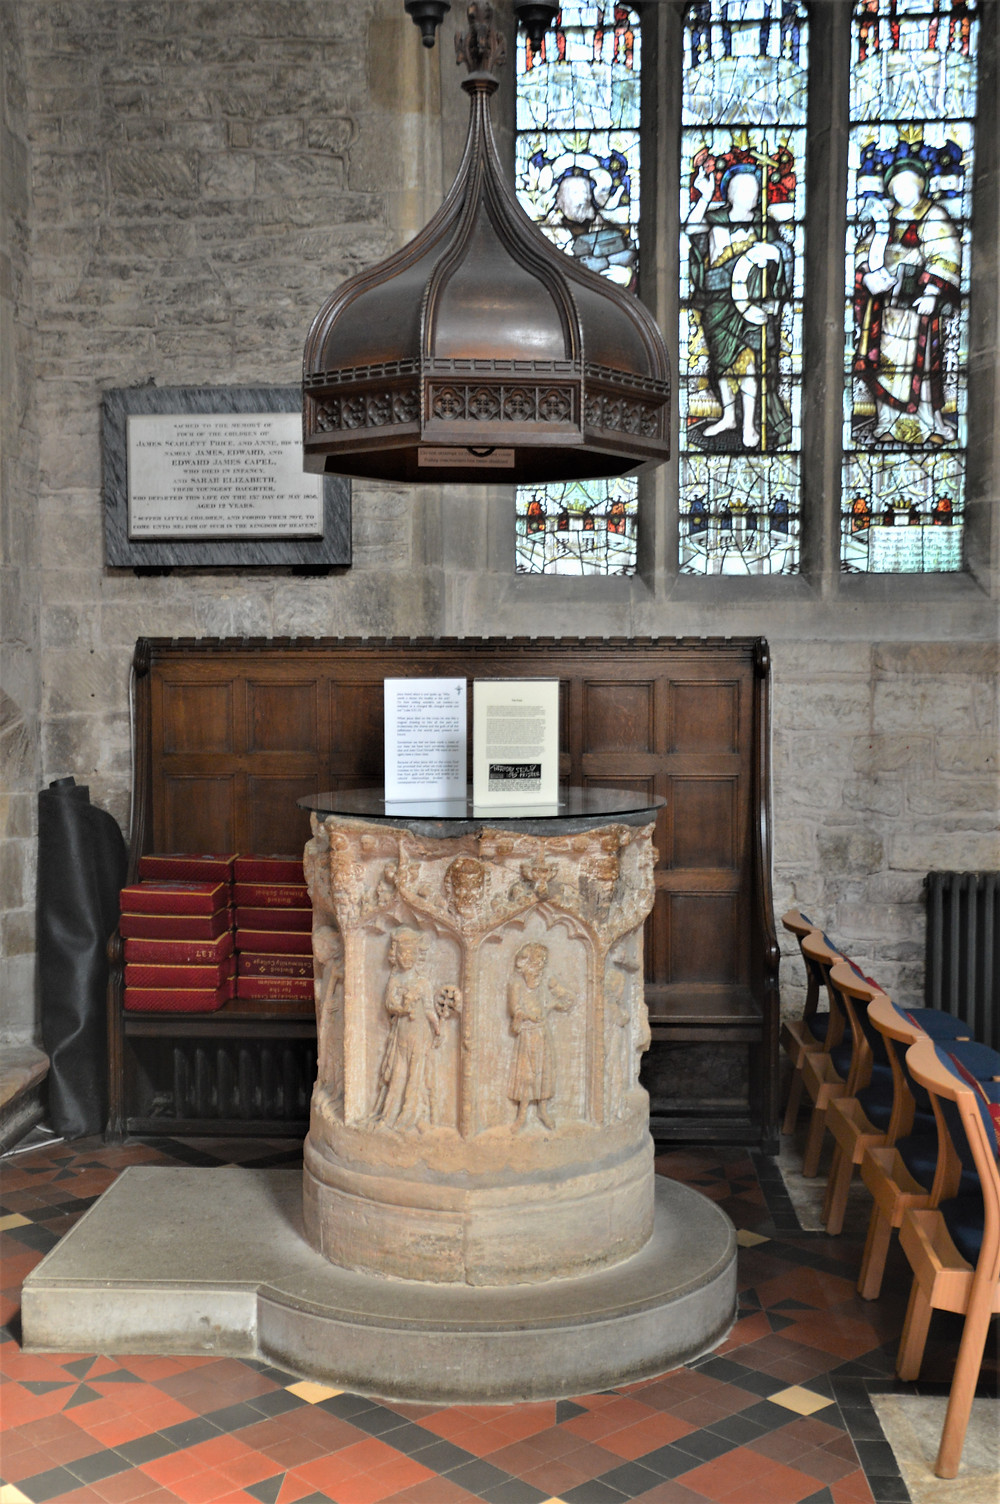 A Norman baptismal font in Burford Church dates to 12th century. Burford of the Cotswolds